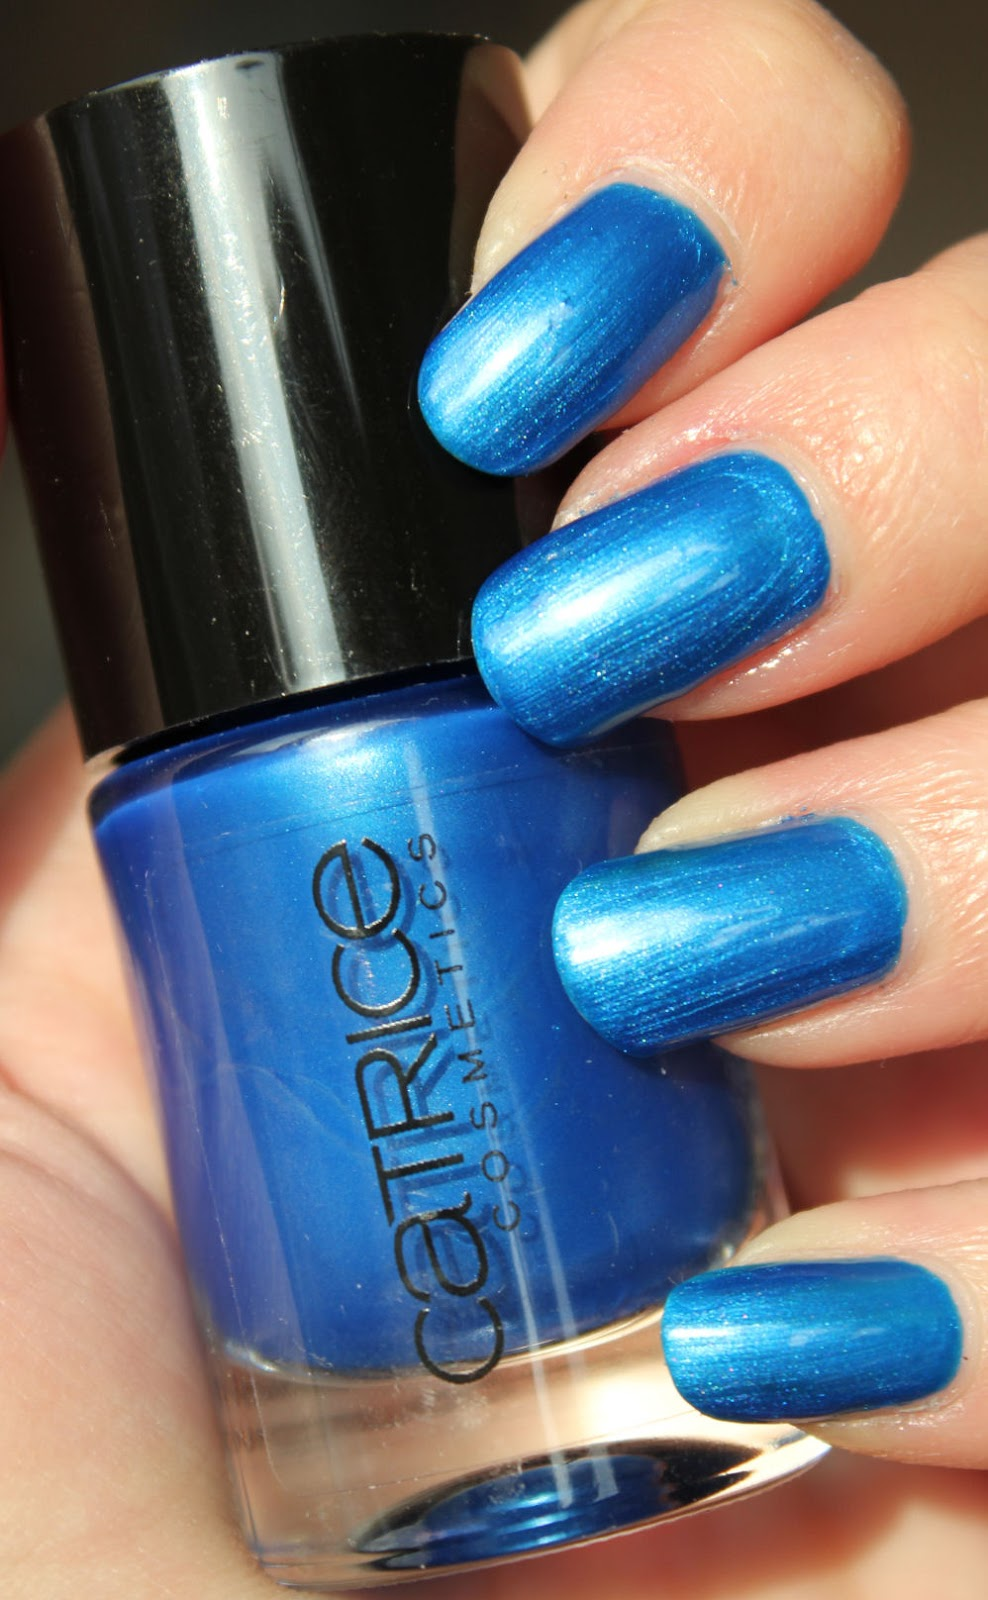 http://lacquediction.blogspot.de/2014/04/catrice-ultimate-nail-lacquer-49-keep.html